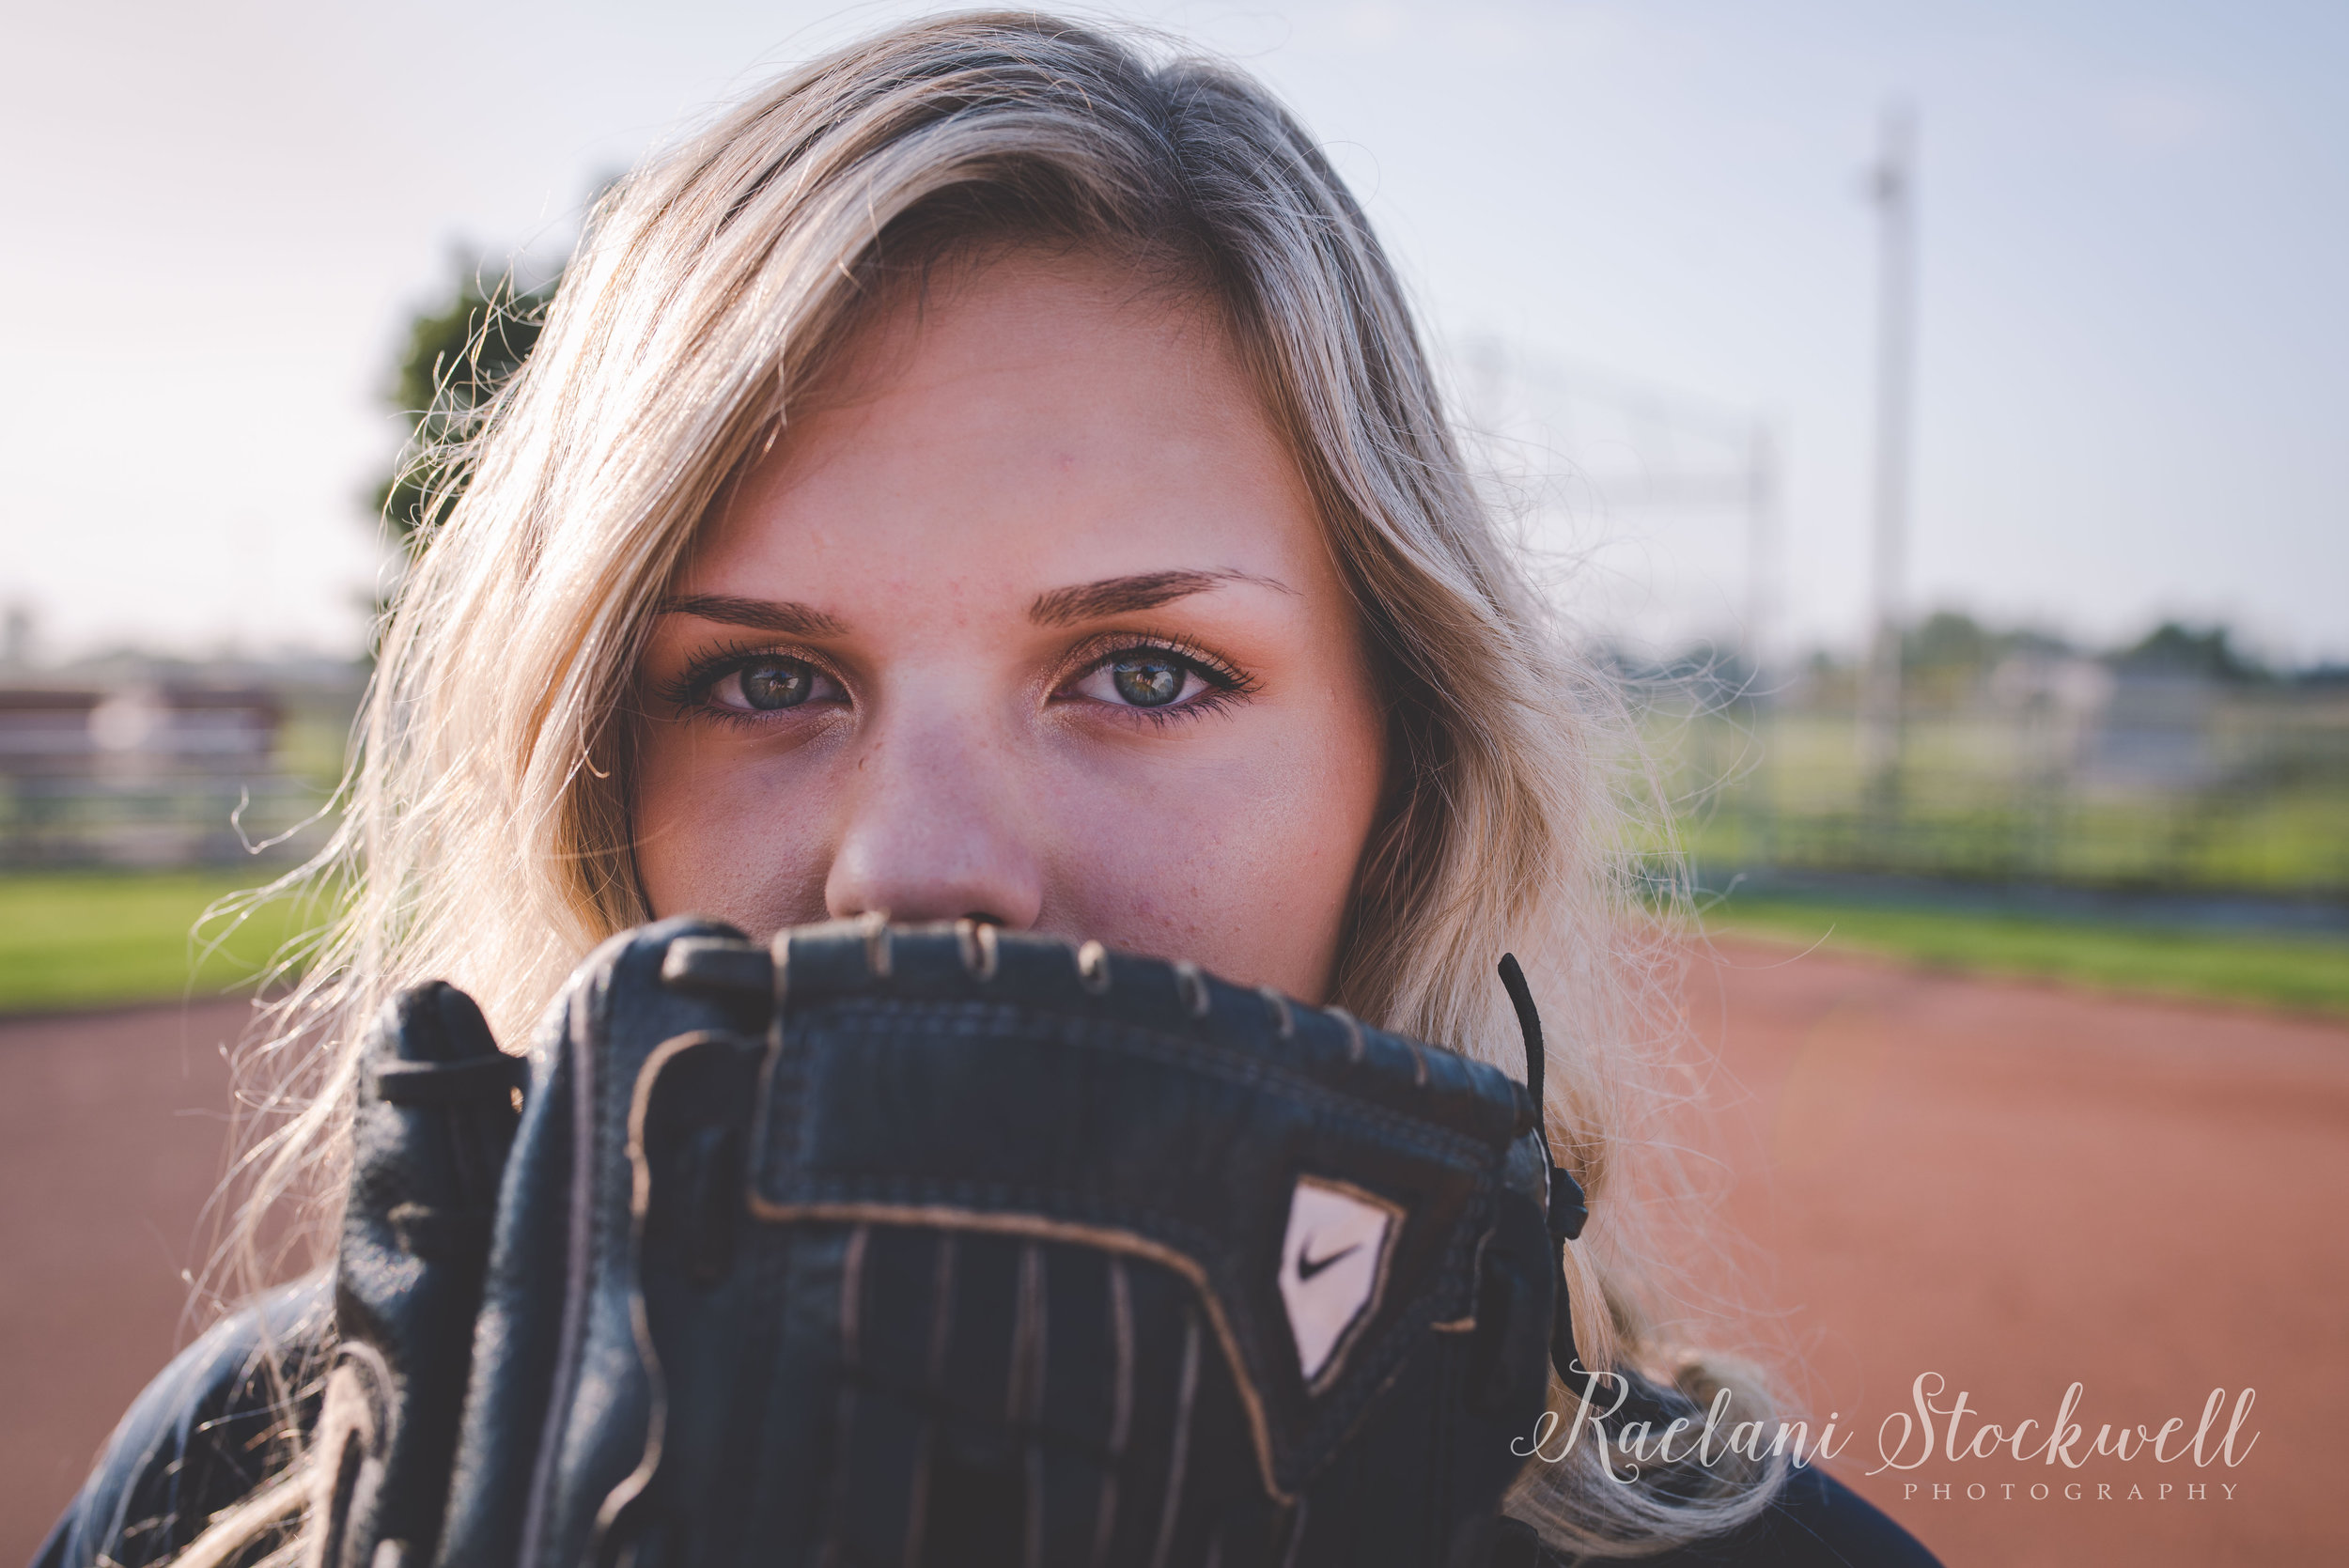 high school senior, senior photos, senior photography, port huron northern high school, varsity softball, senior girl, senior model, fort Gratiot Michigan, senior photographer